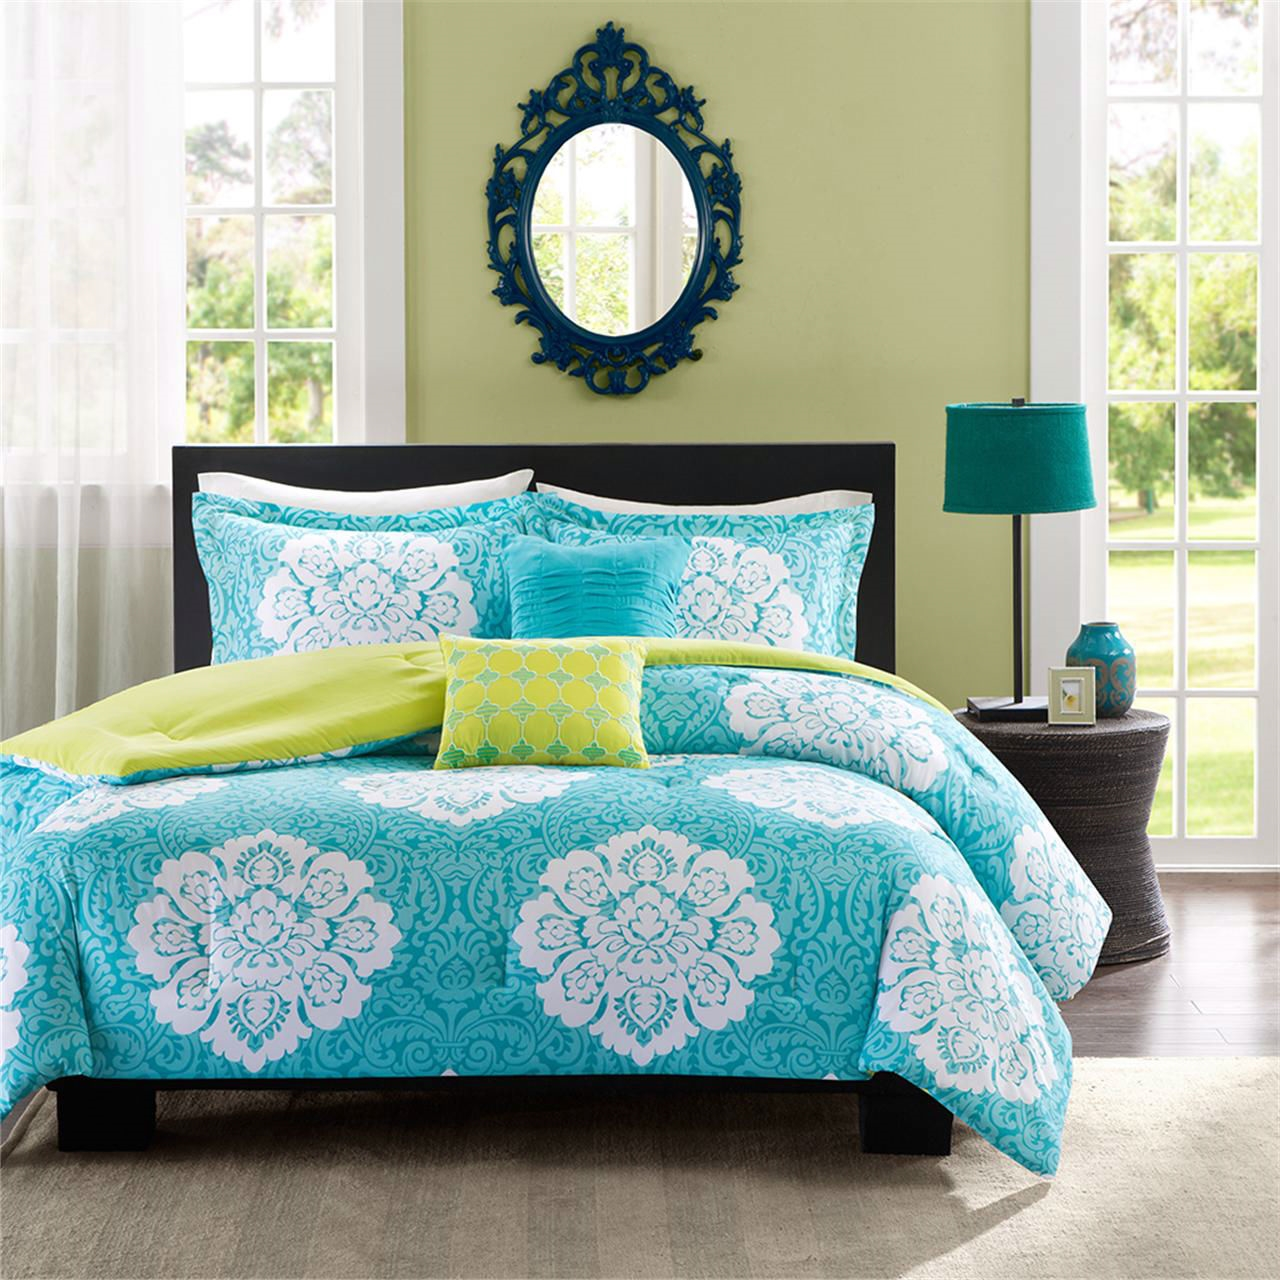 Full size 5 Piece forter Set in Teal Blue White Damask